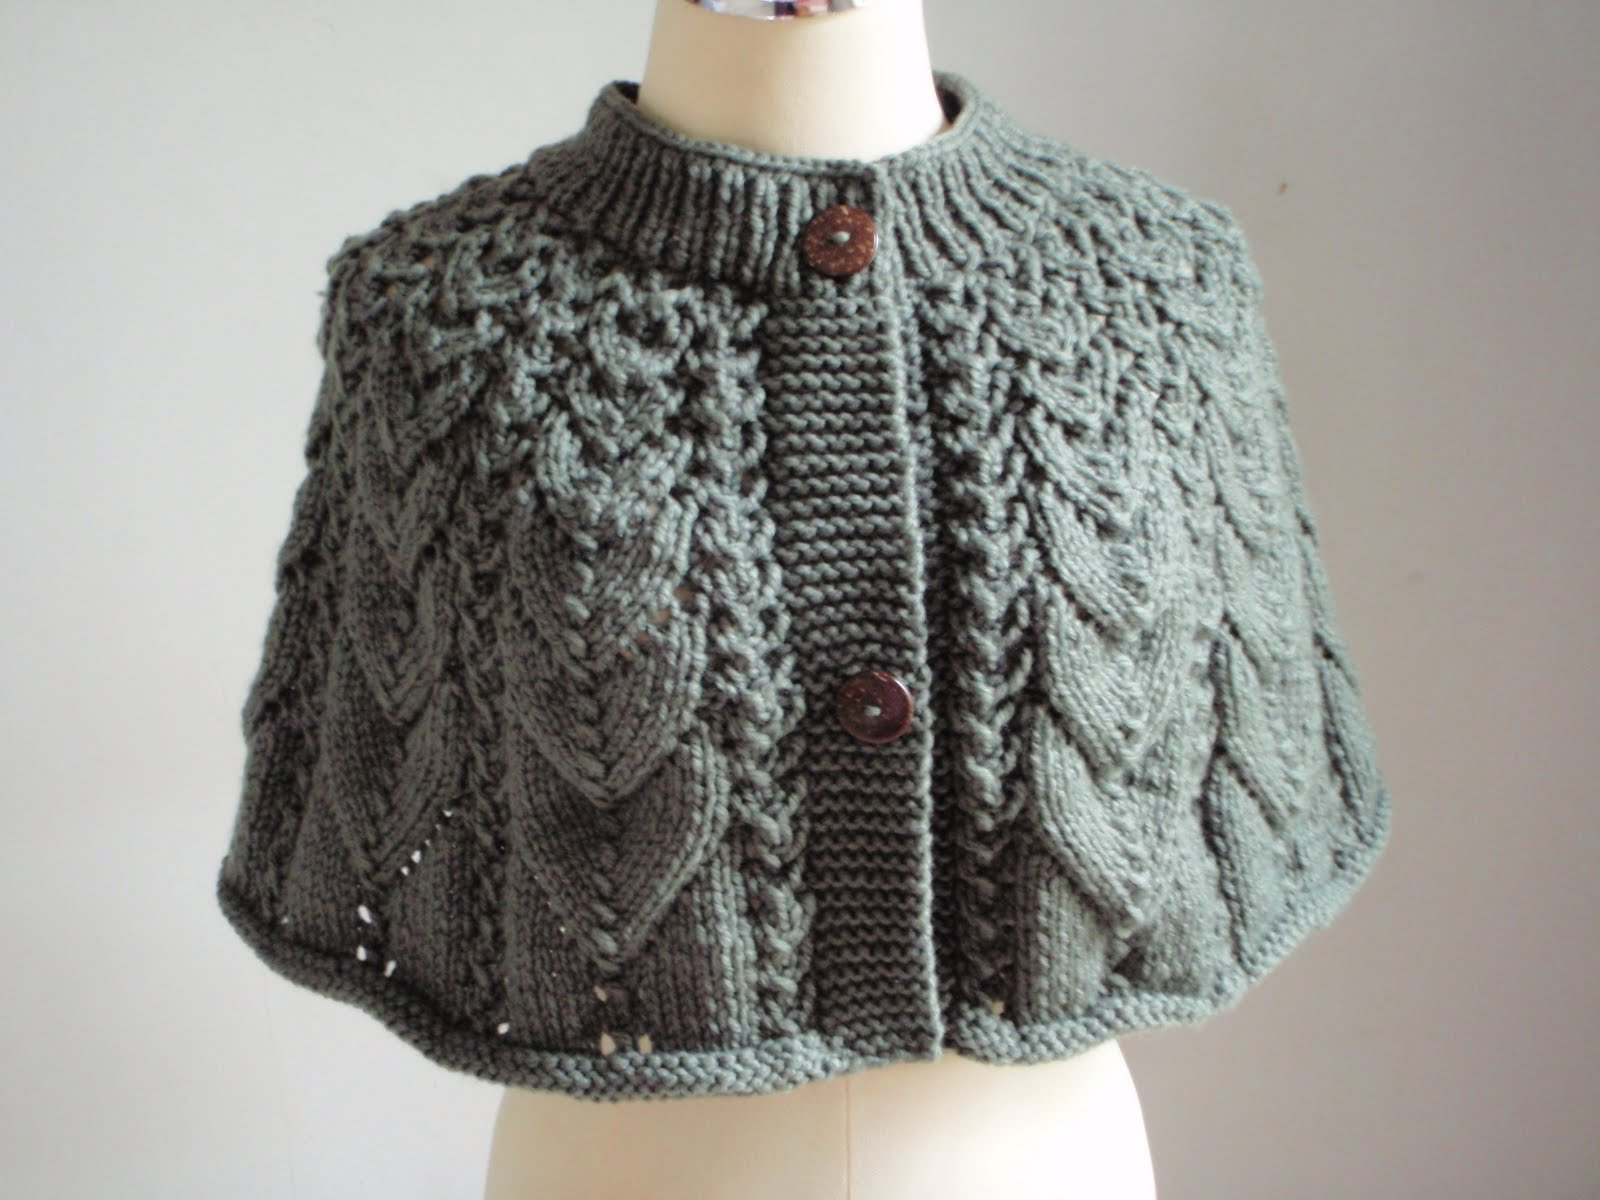 Knitting Patterns For Capelets Free : Myknittingdaily: Knitting Cape in Frost Green